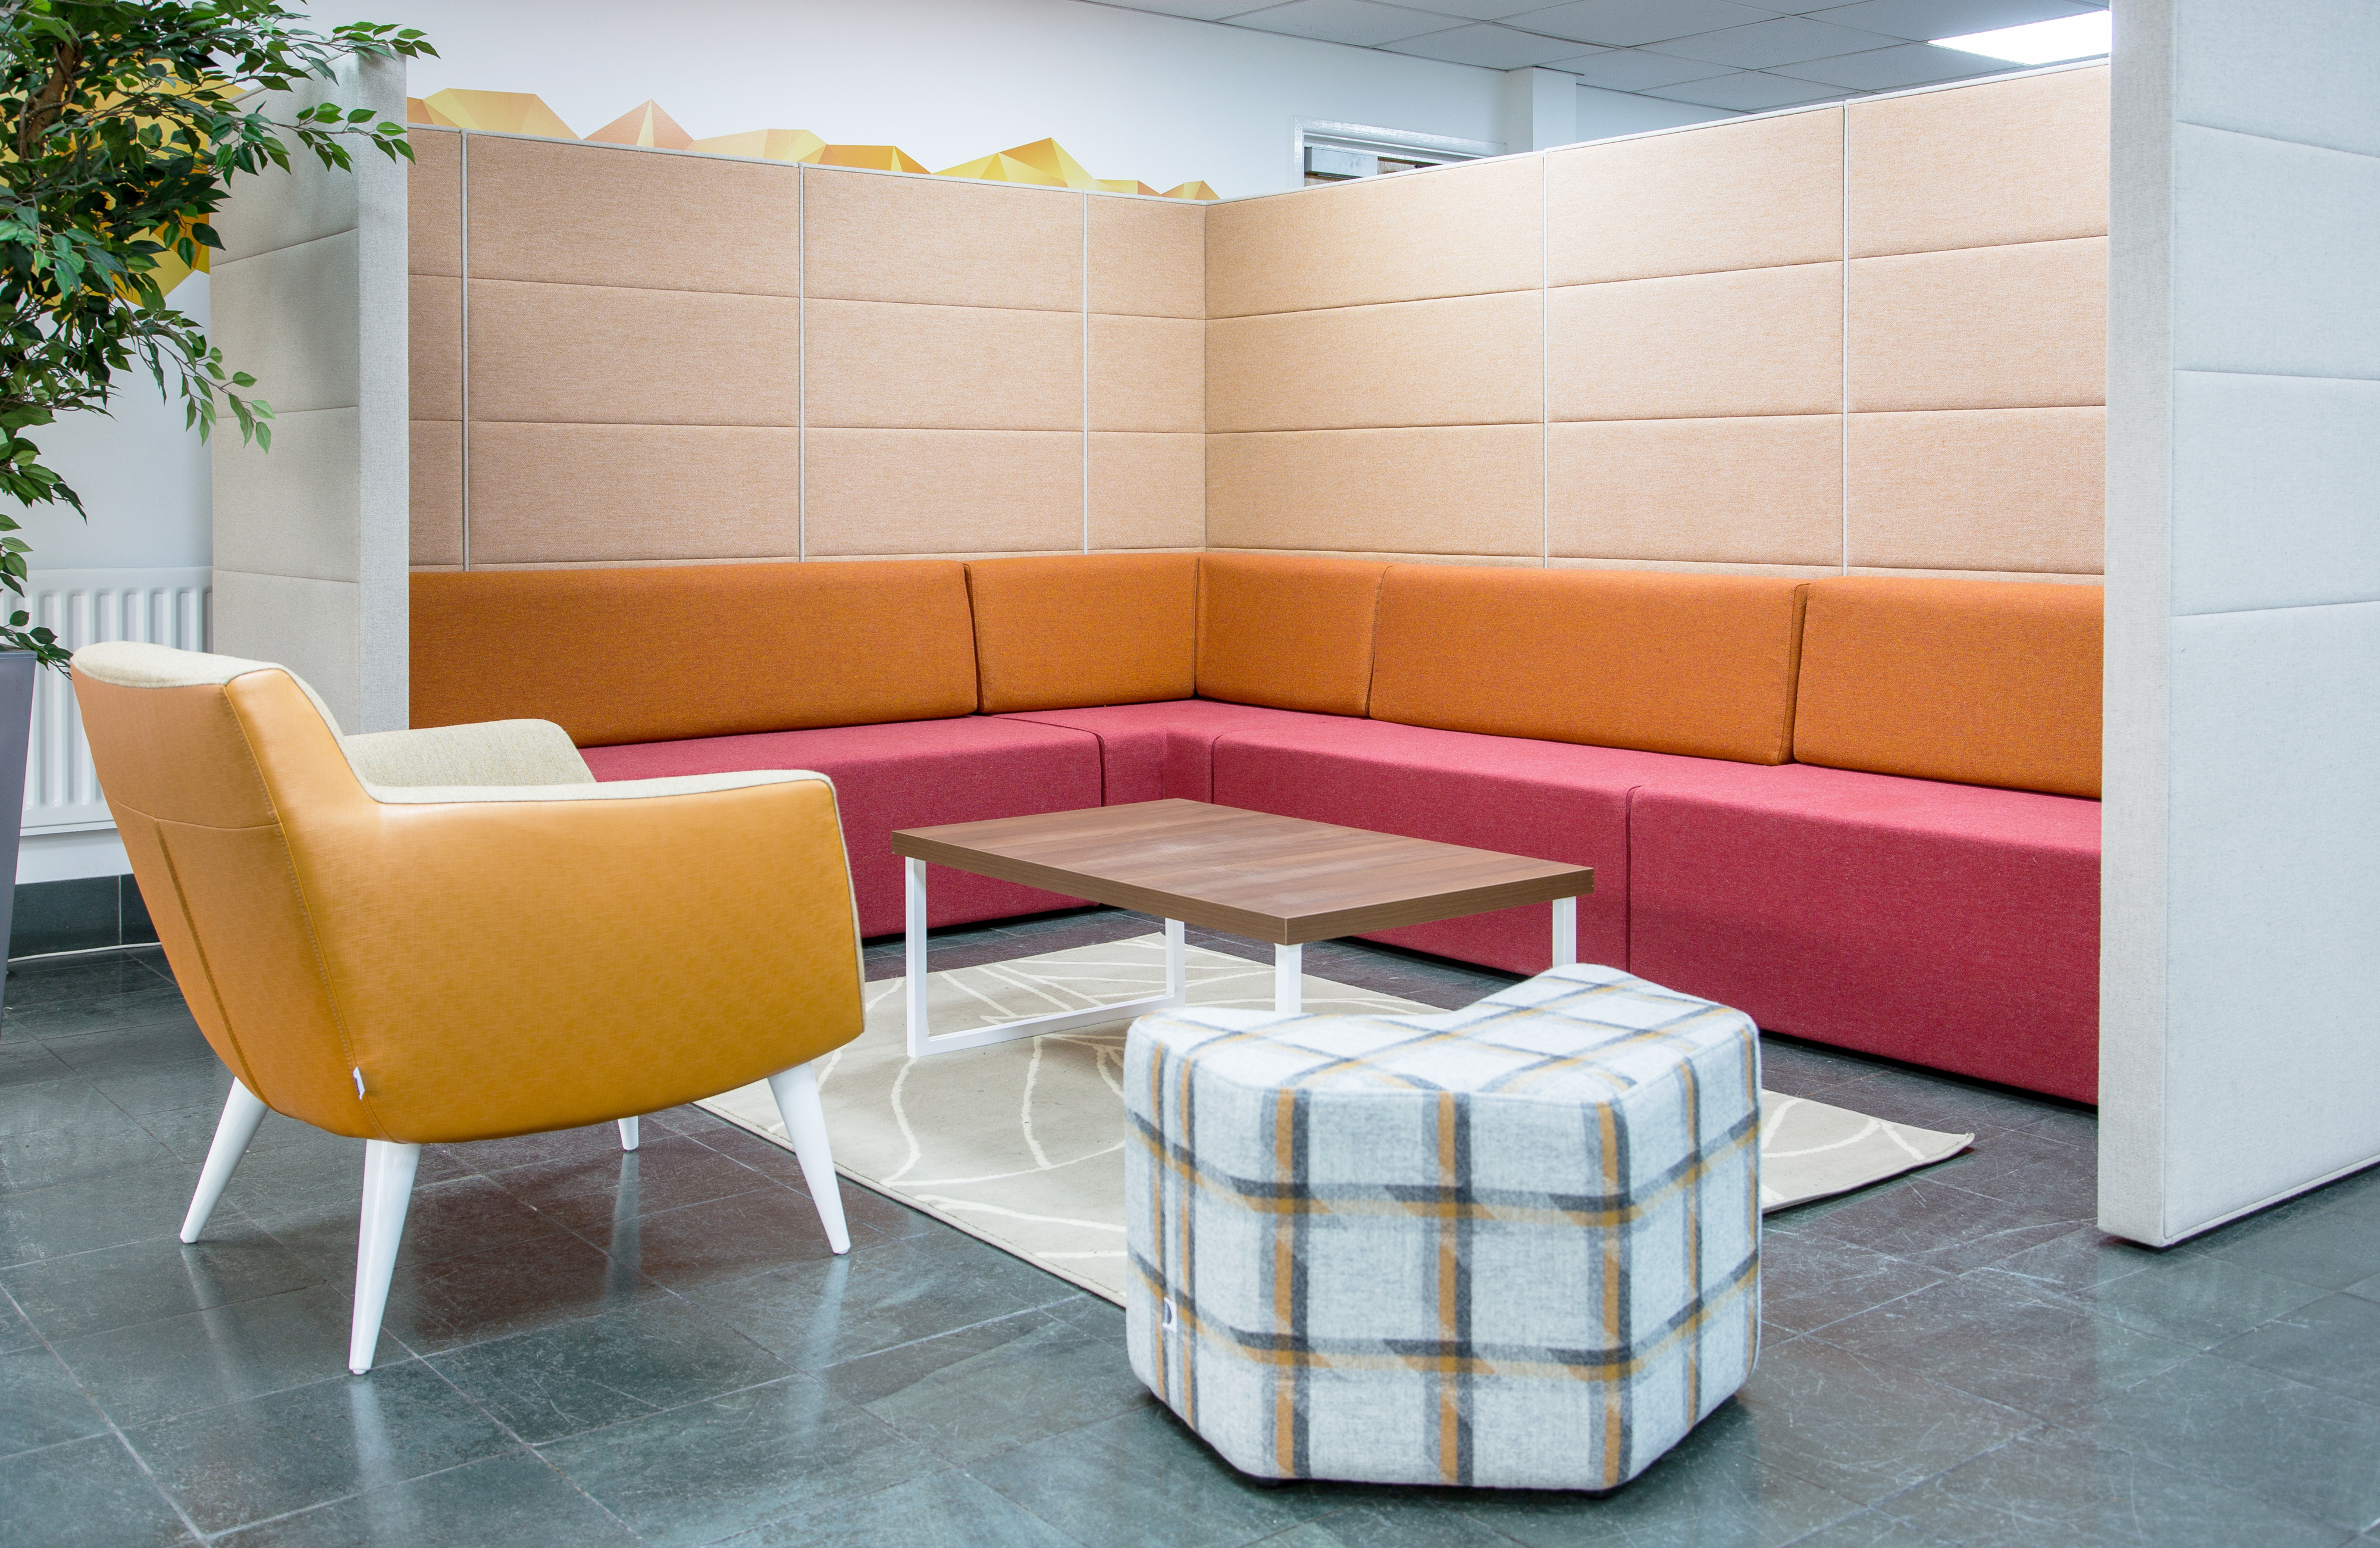 Adytum Space Booth - Seating Booths - Breakout Furniture